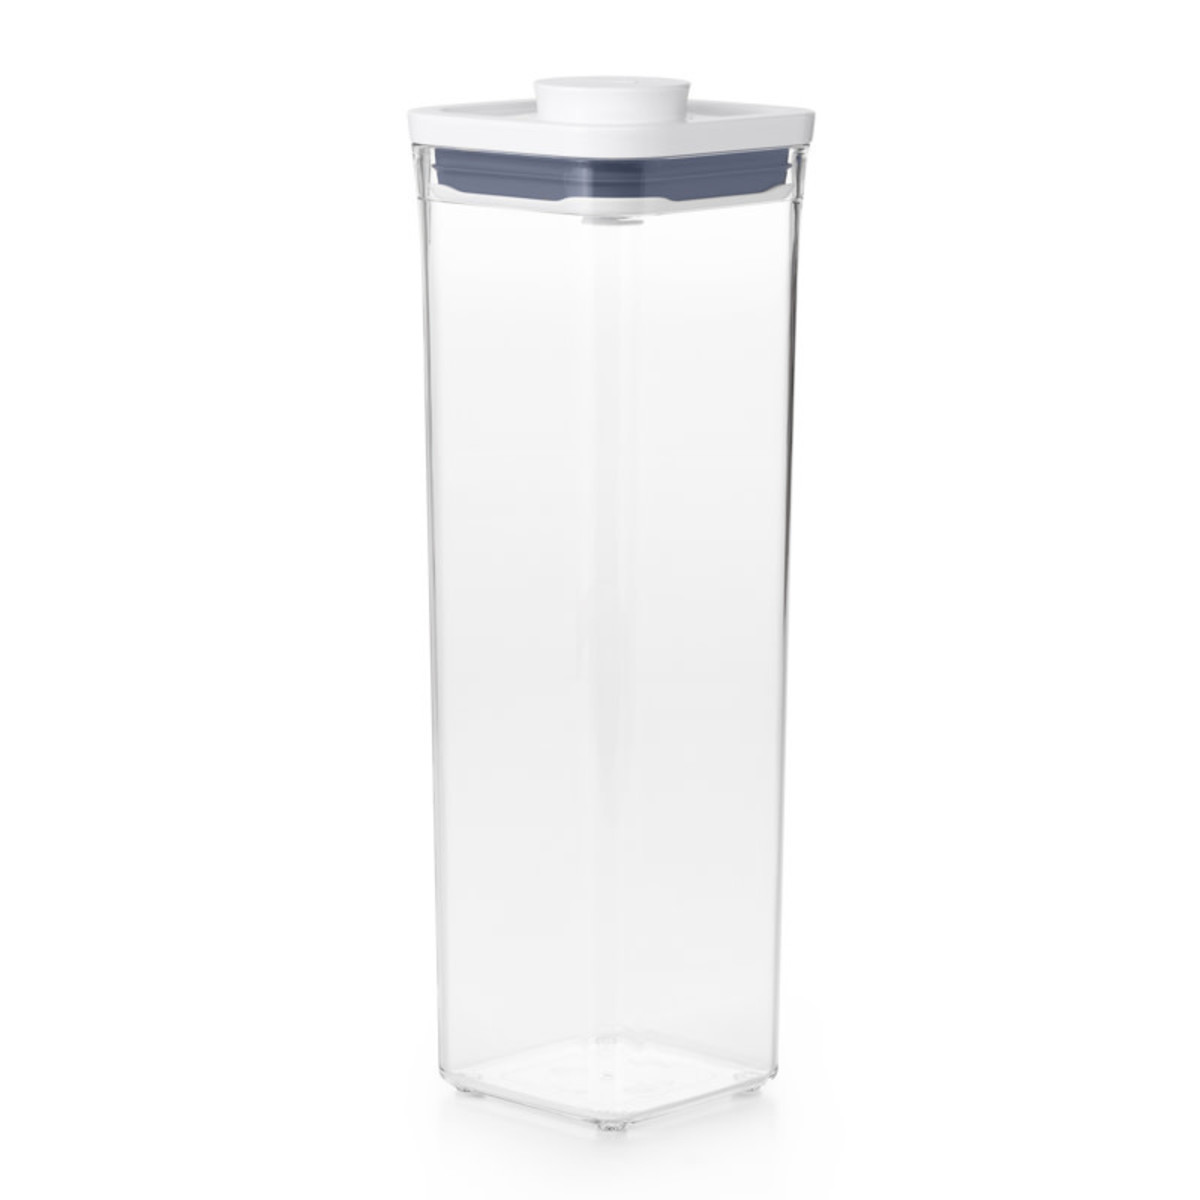 OXO Good Grips OXO Pop 2.0 Small Square Tall, 2.1L